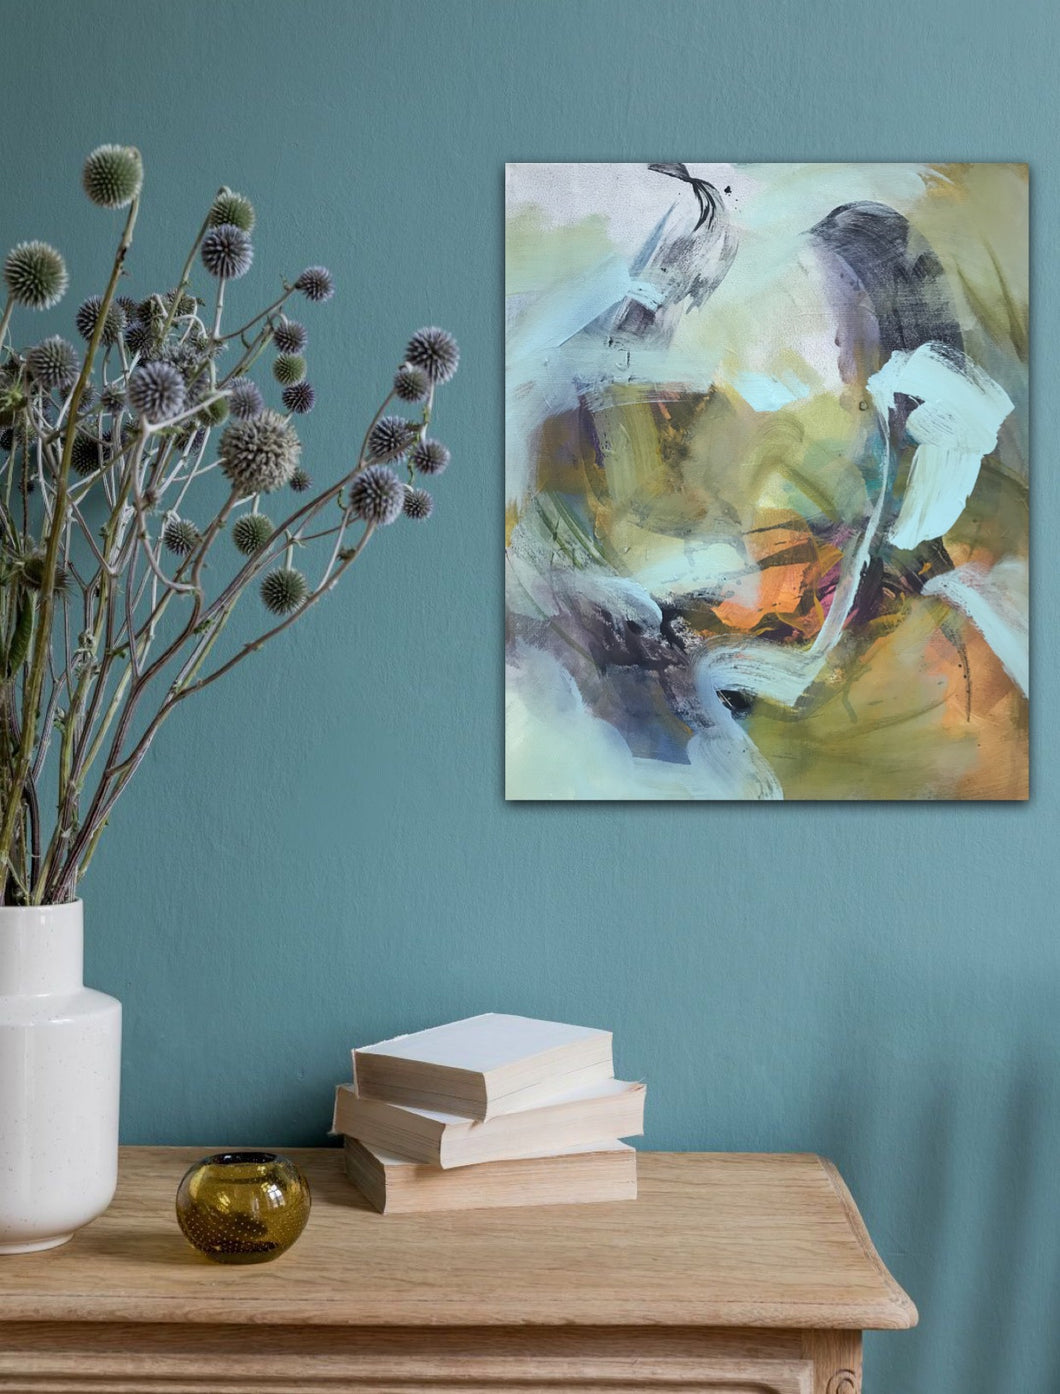 Abstract expressionist art on a turquoise colored wall over a table with books and plants- modern artwork and abstract portrait